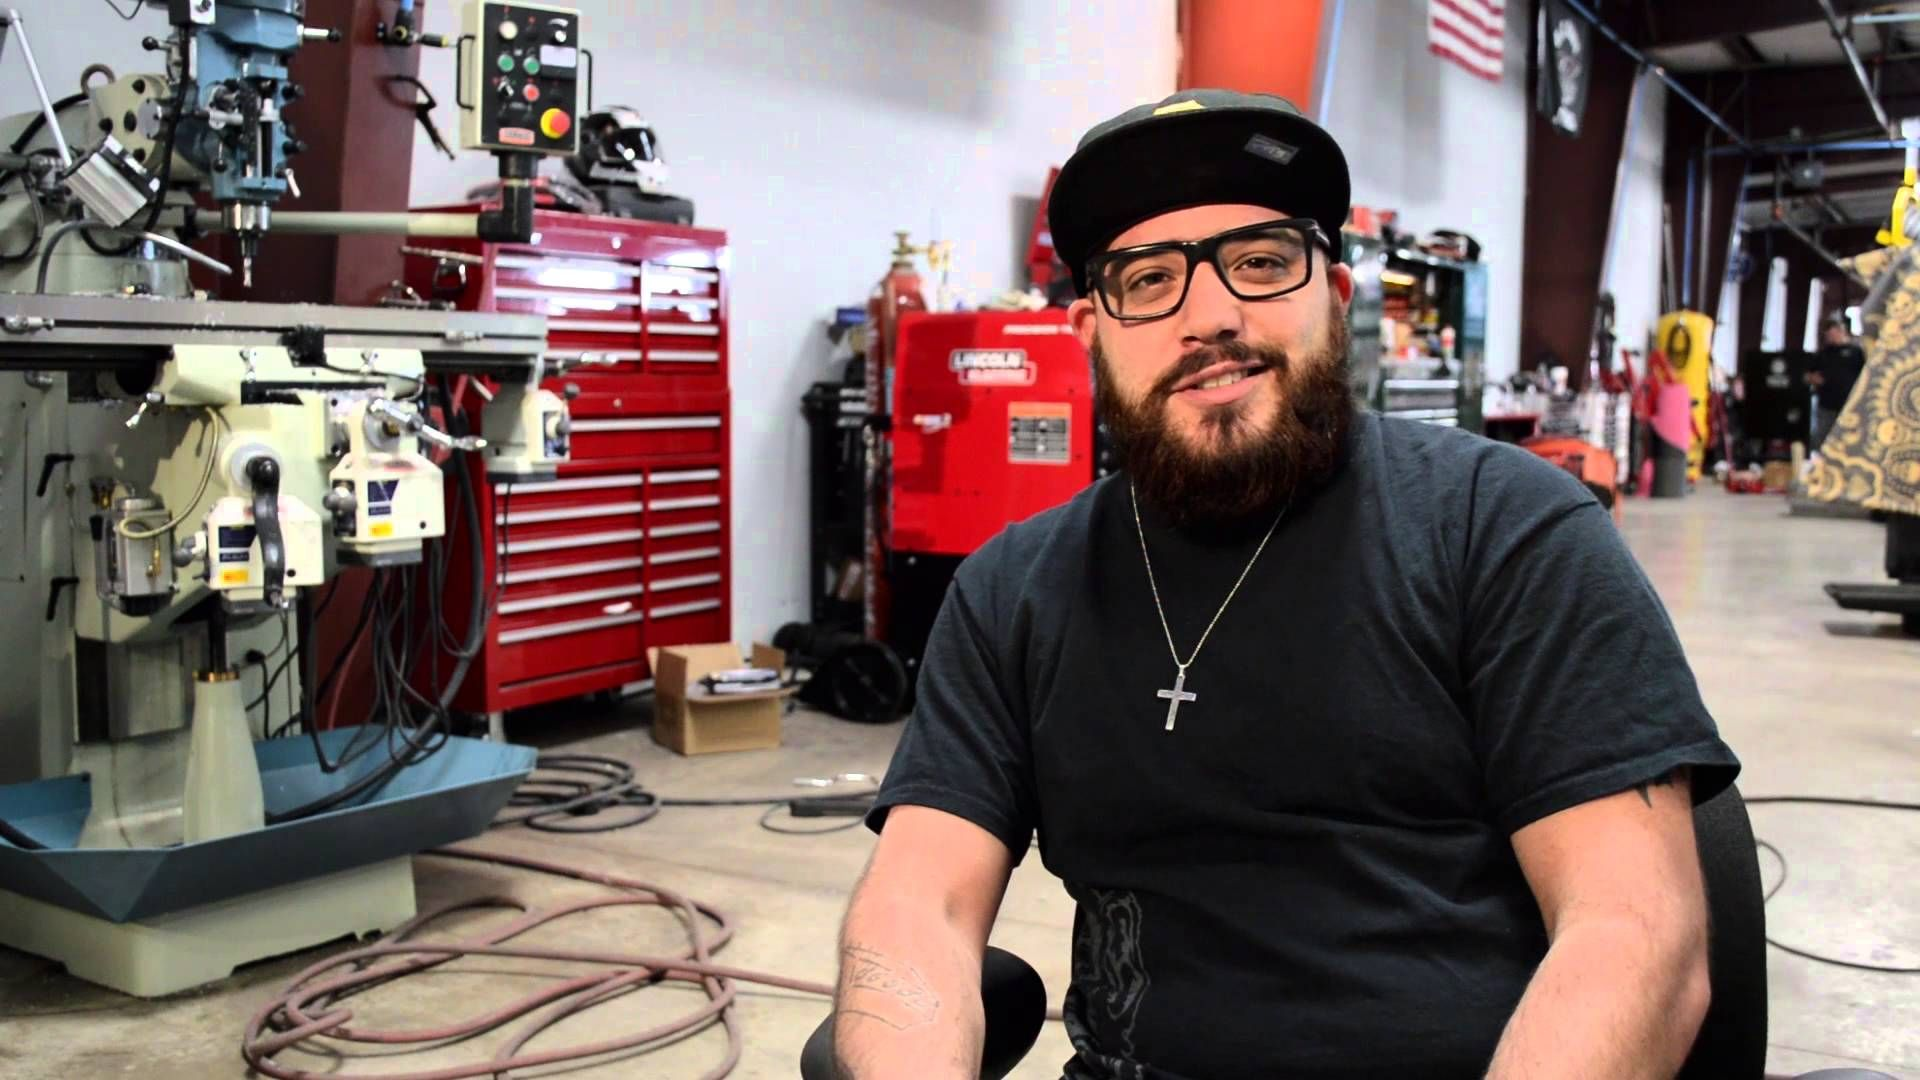 Gas monkey garage gas monkey pinterest garage monkey and gas - Gas Monkey Garage Meet The Monkeys Dustin